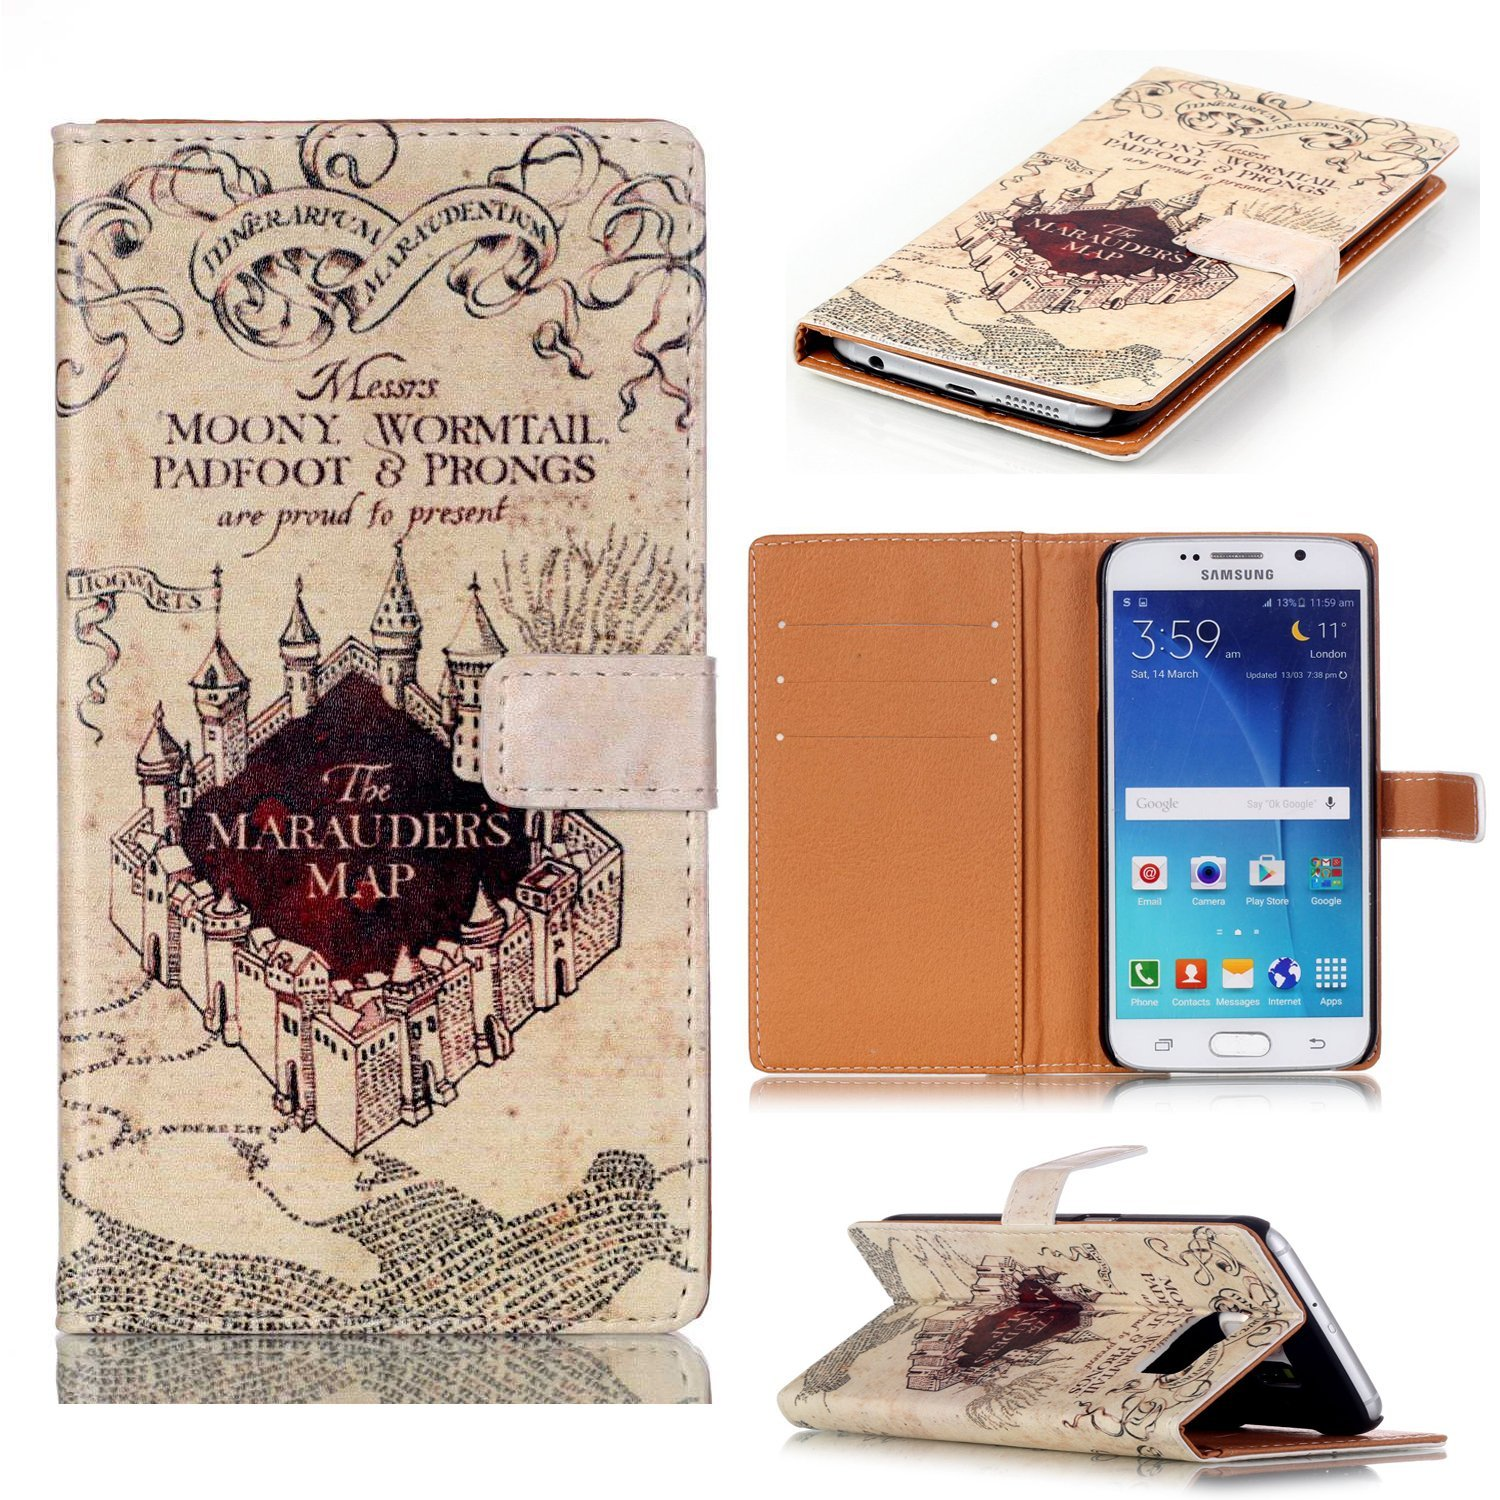 Pro 3 tablet sleeve case slim wallet pu leather protective skin pouch - Amazon Com S6 Edge Case Galaxy S6 Edge Wallet Case Hogwarts Marauder S Map Pattern Slim Wallet Card Flip Stand Pu Leather Pouch Case Cover For Samsung